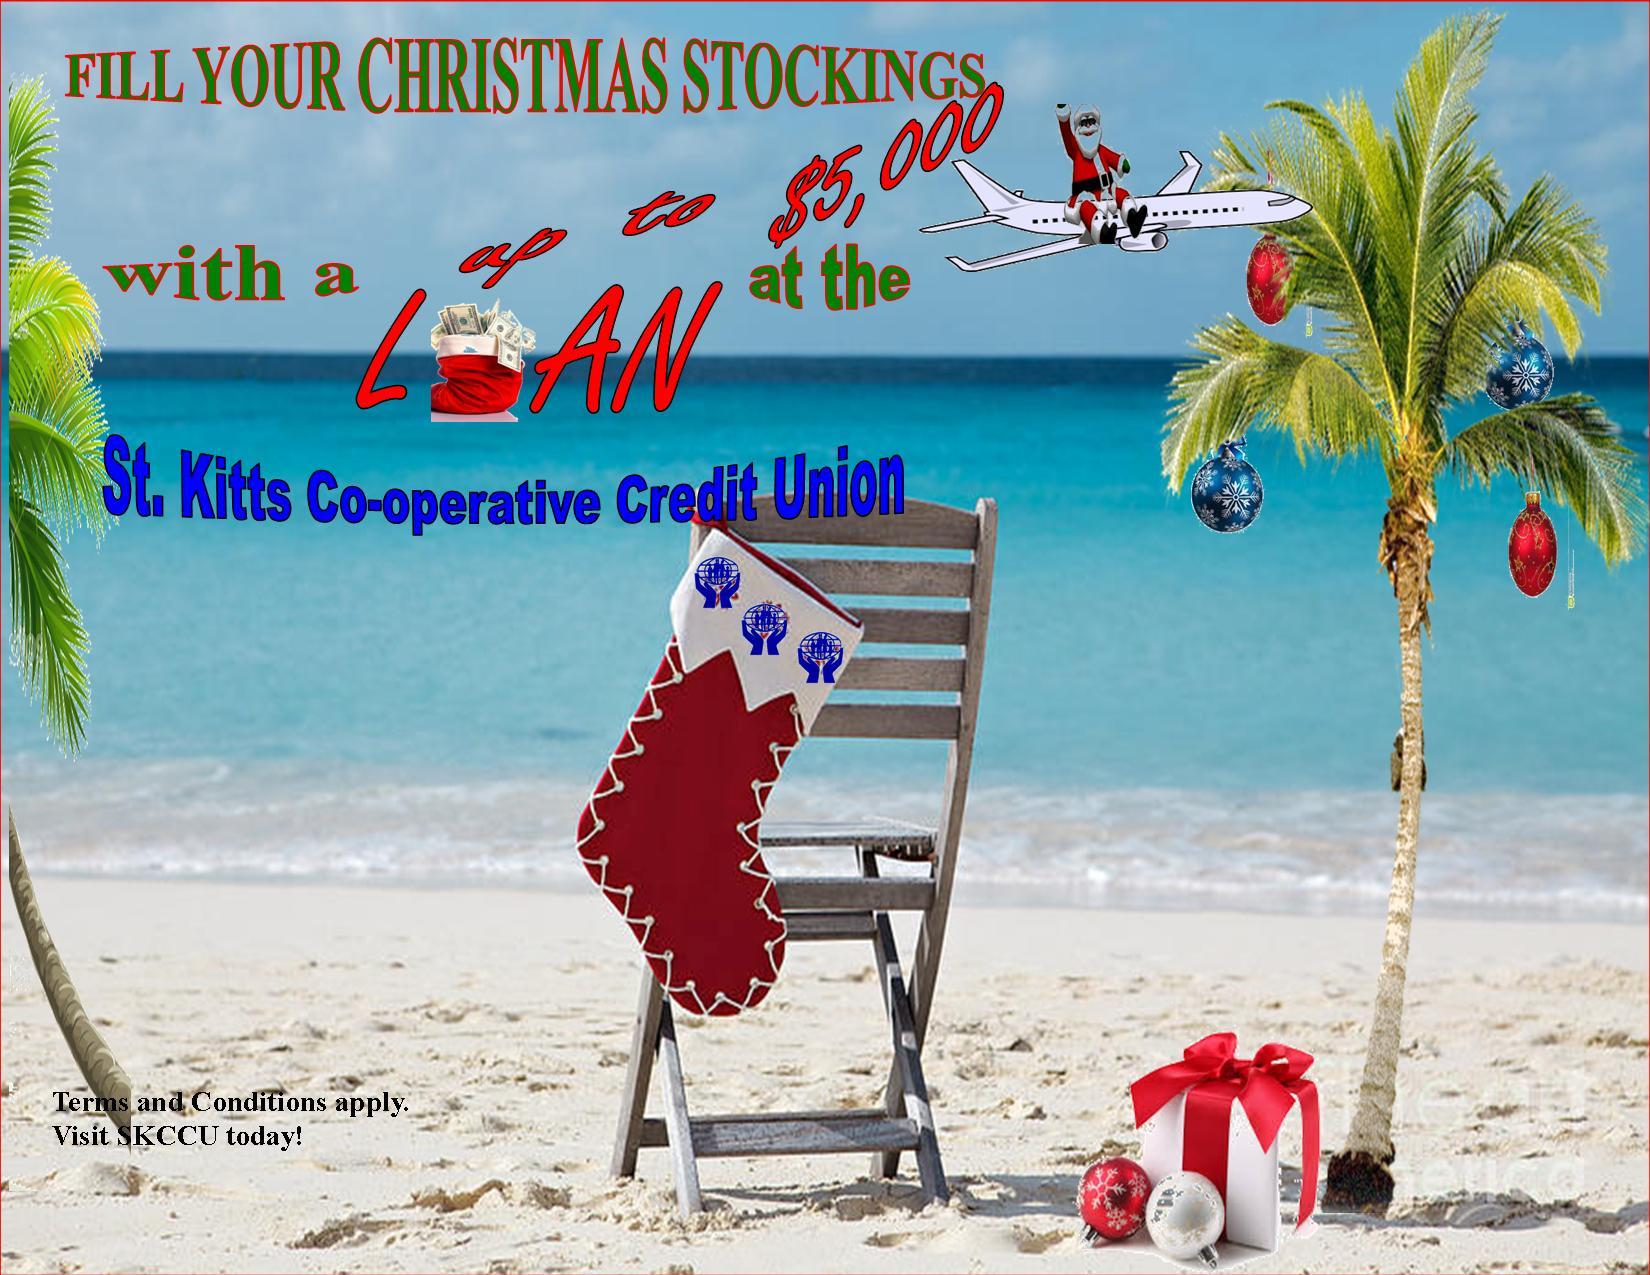 Christmas Loan Promotions.Christmas 5000 Loan 2015 St Kitts Co Operative Credit Union